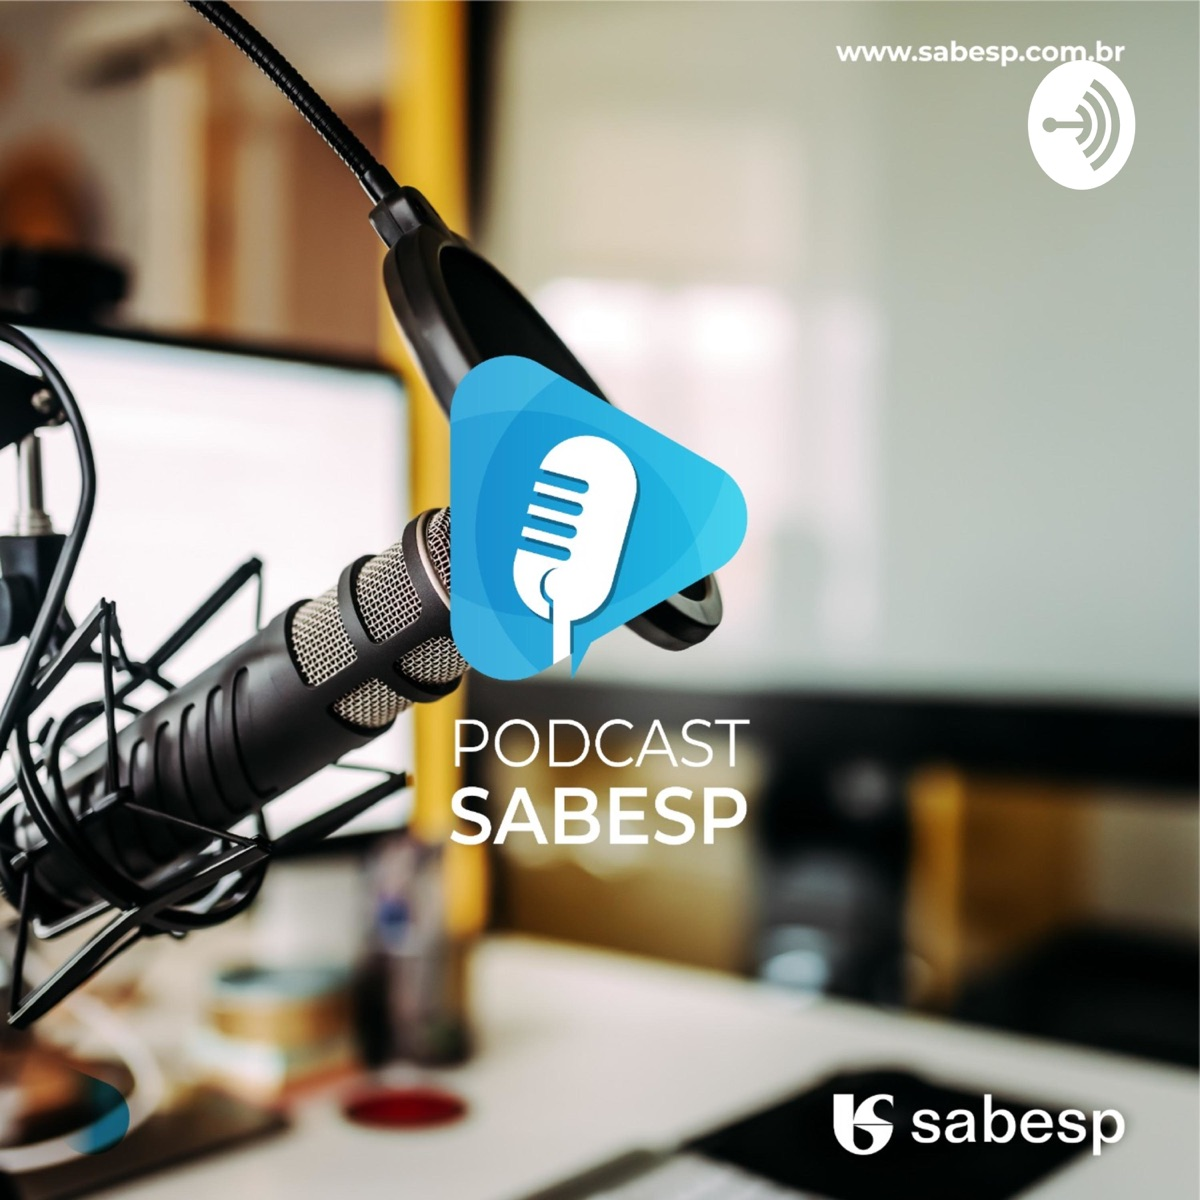 Podcast Sabesp